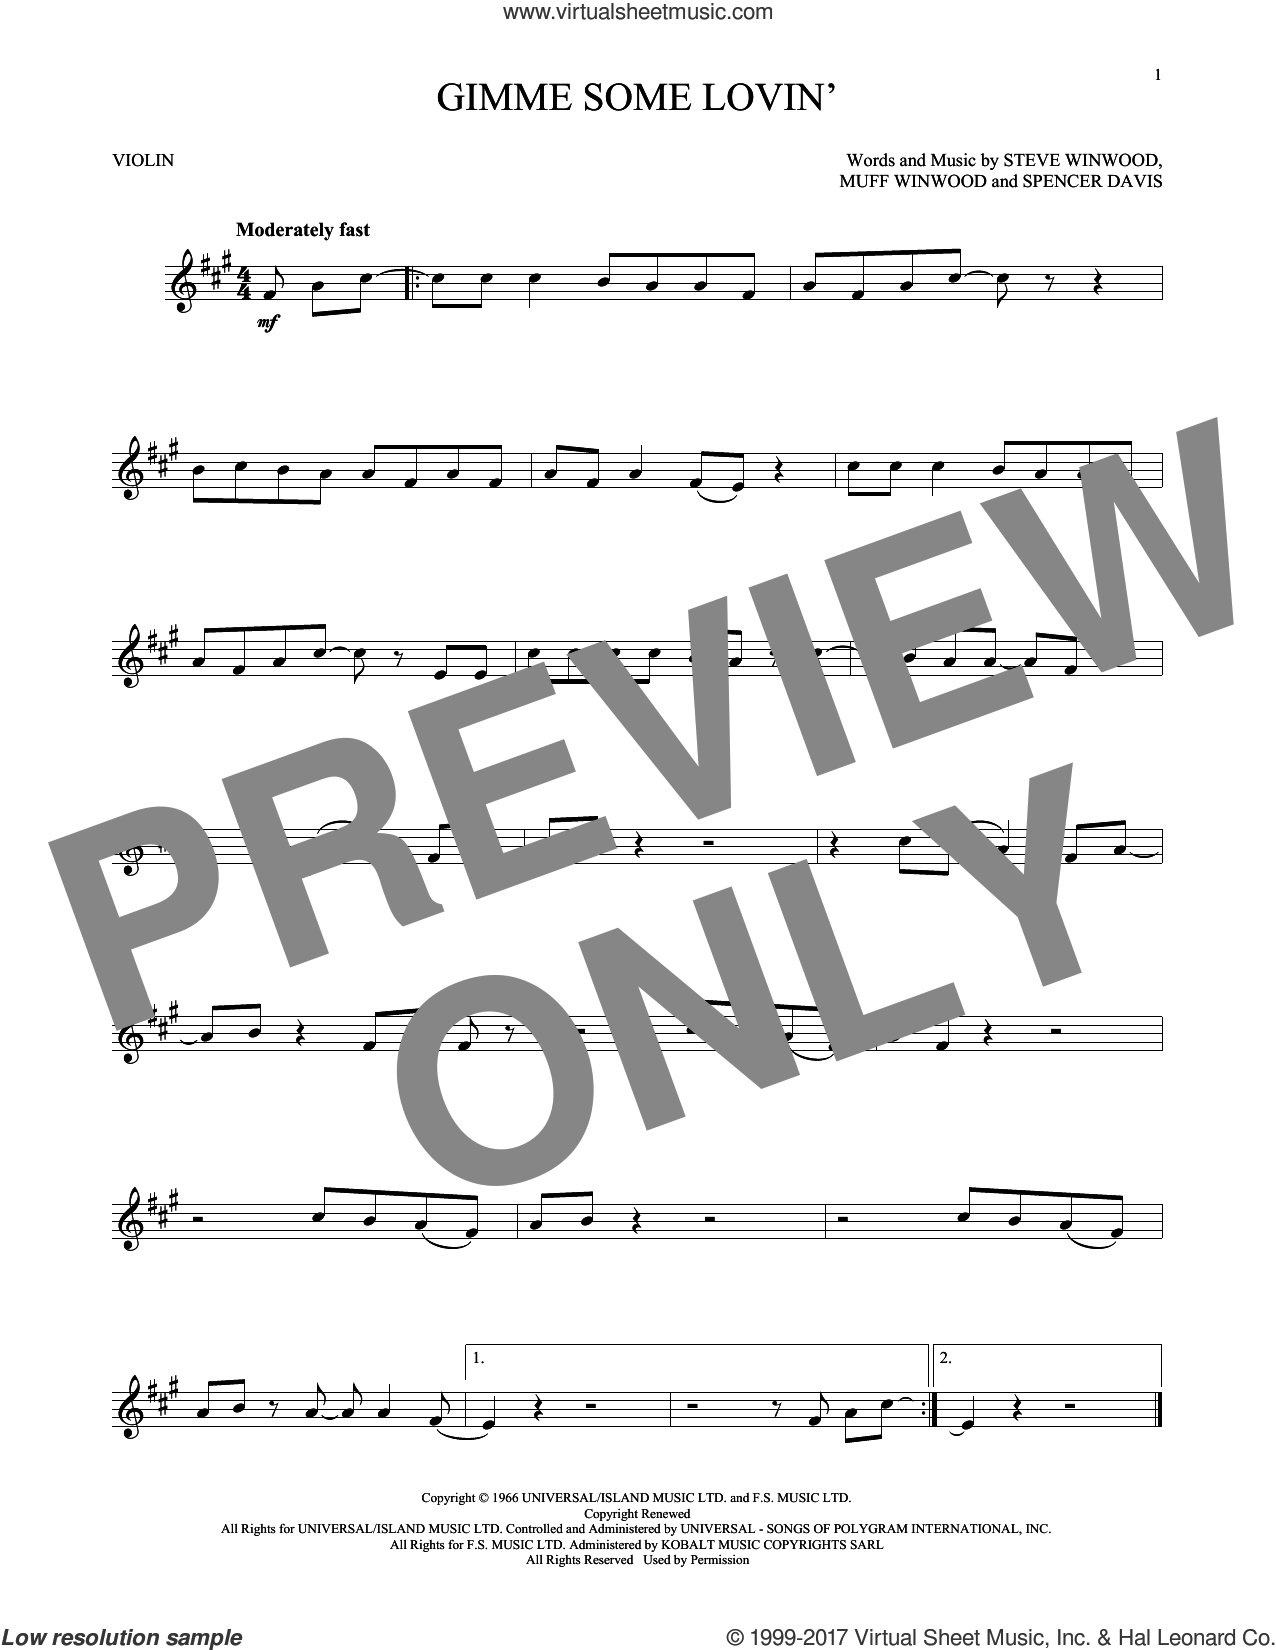 Gimme Some Lovin' sheet music for violin solo by The Spencer Davis Group, Muff Winwood, Spencer Davis and Steve Winwood, intermediate skill level